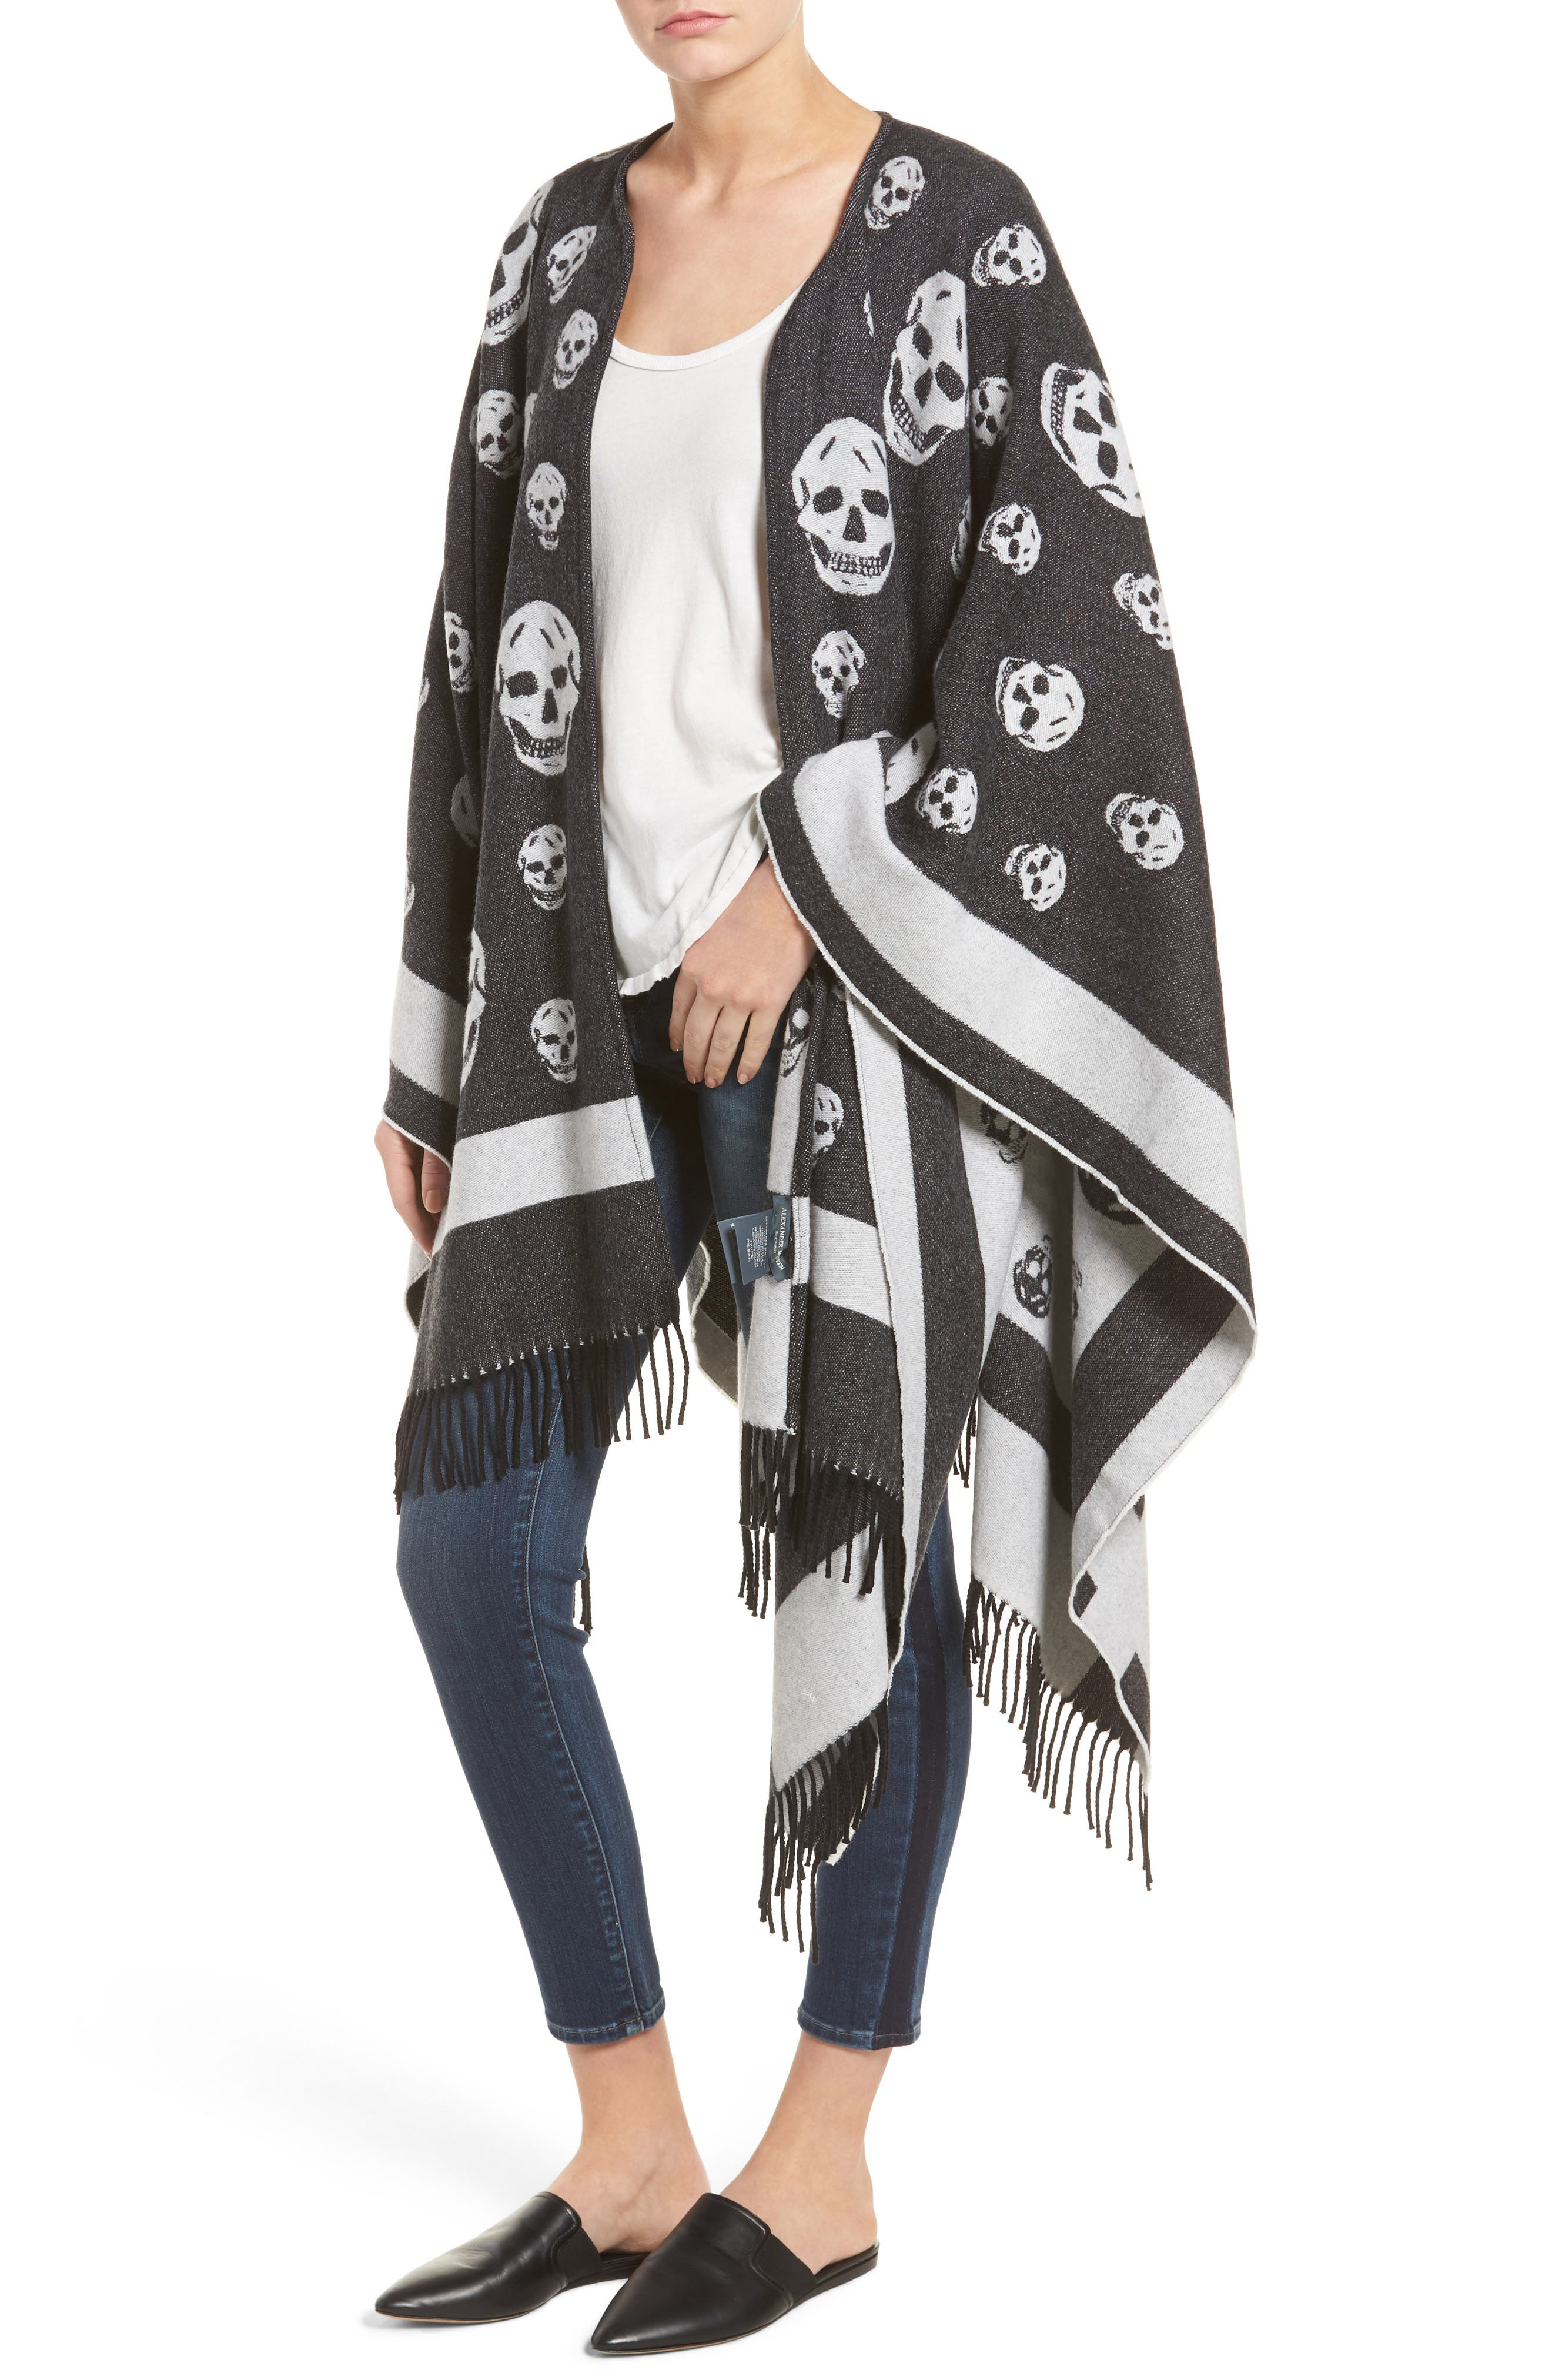 Main Image - Alexander McQueen 'Big Skull' Wool & Cashmere Jacquard Poncho